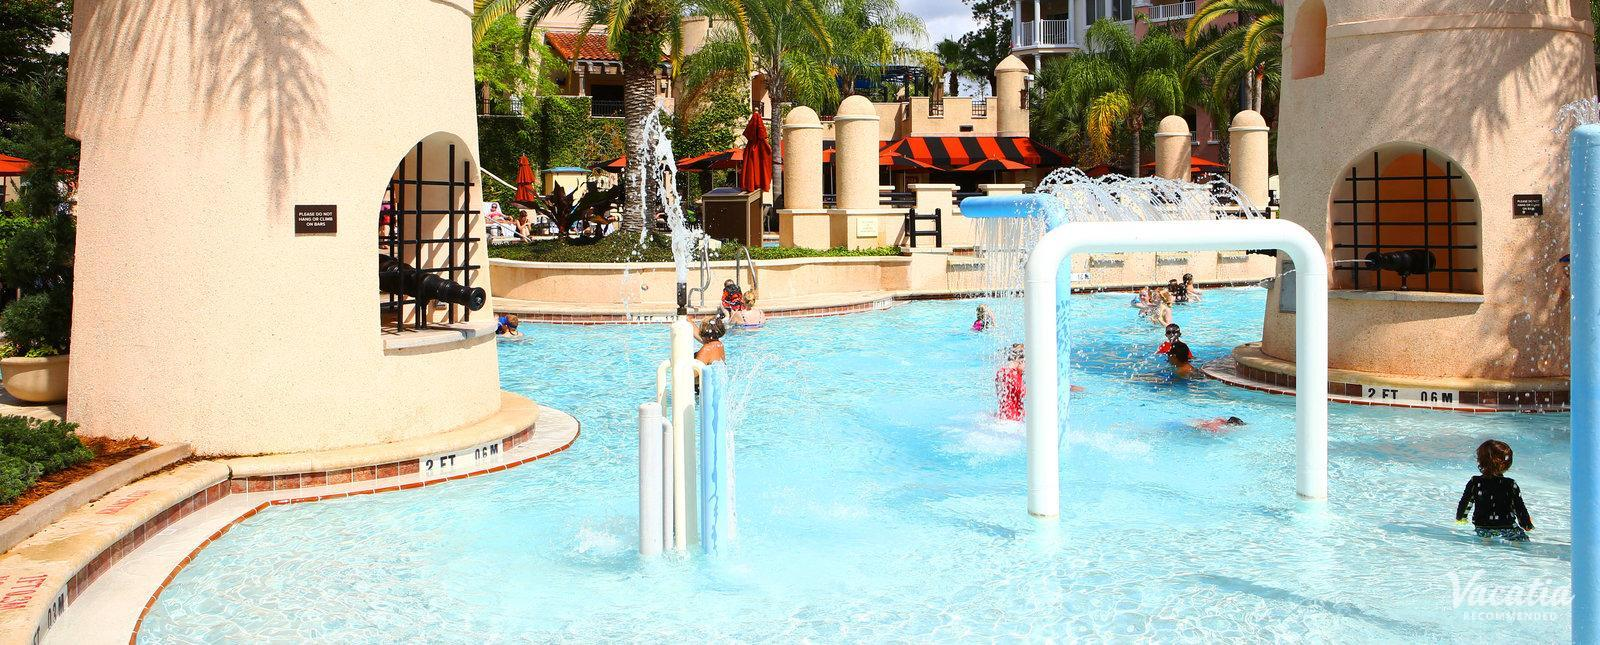 Marriott's Grande Vista Kid Pool